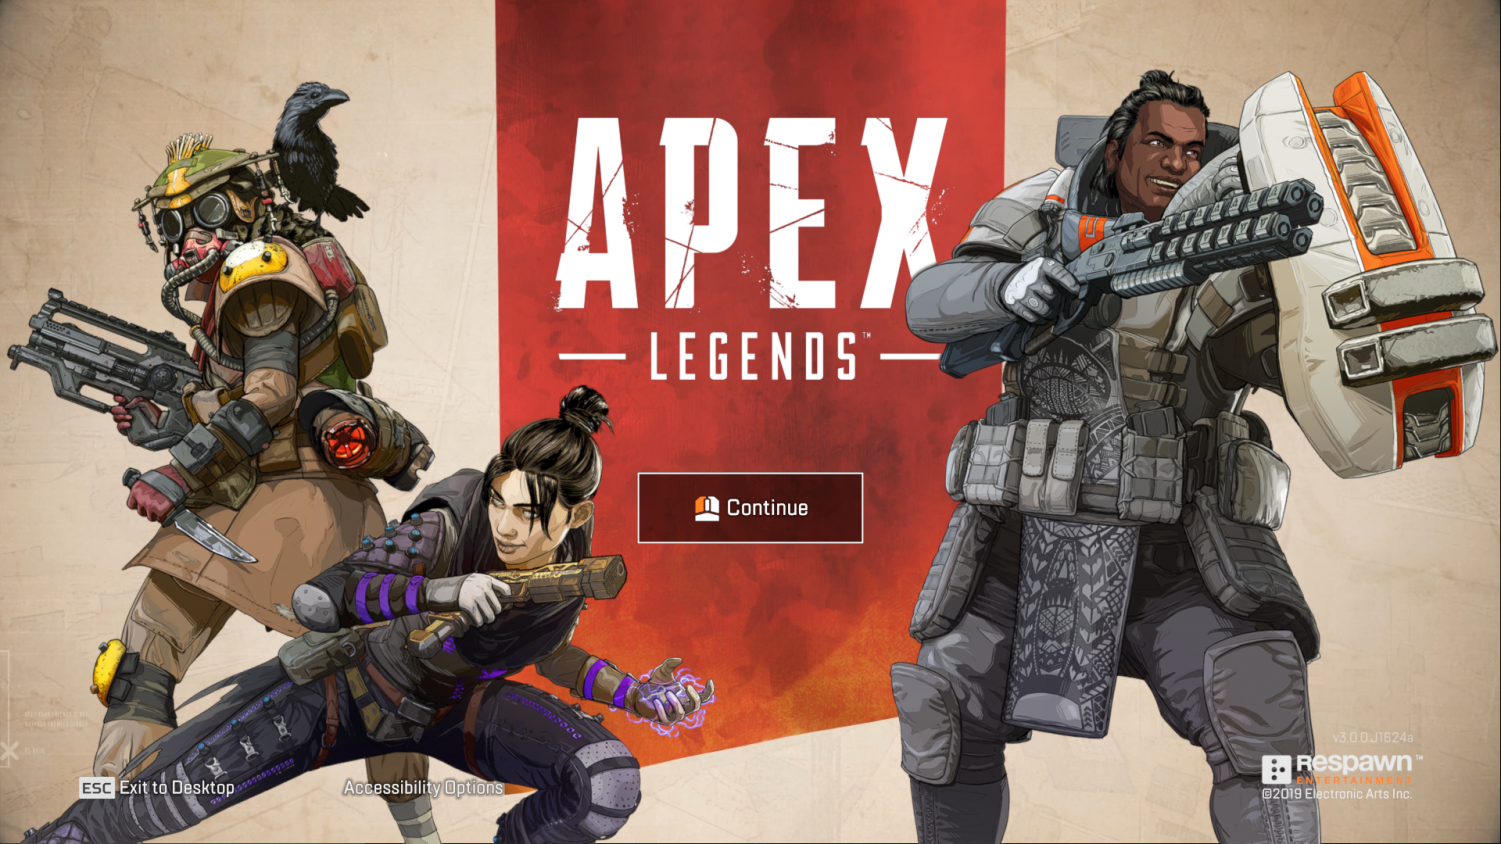 Apex Legends is the newest game to take the Battle Royale genre by storm. With the game hitting 50 million players in under two months of release.